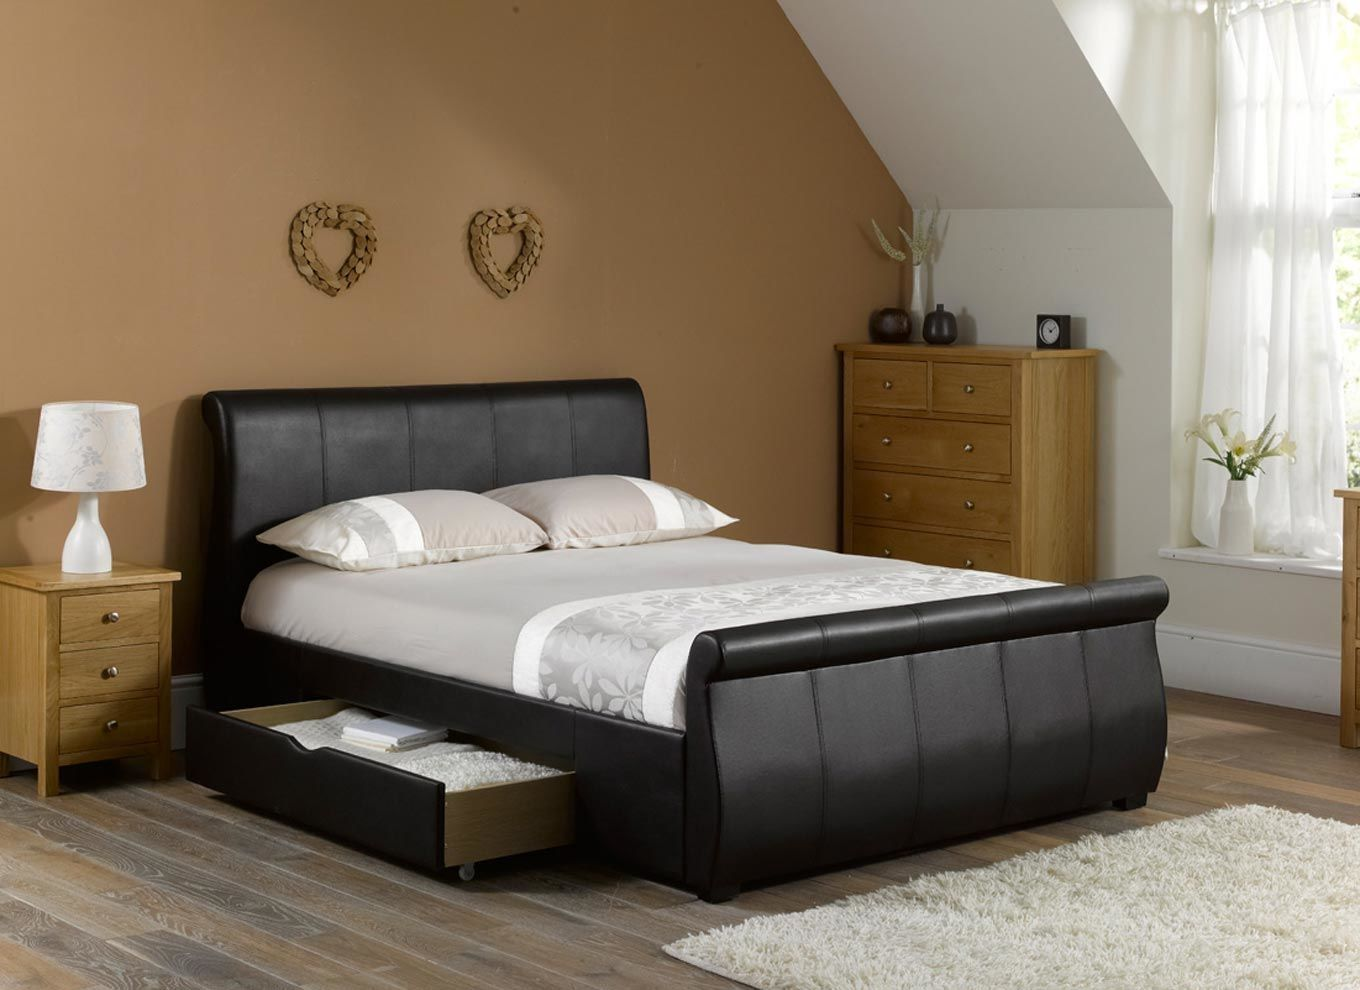 Leather Sleigh Beds With Drawers Ashley bedroom